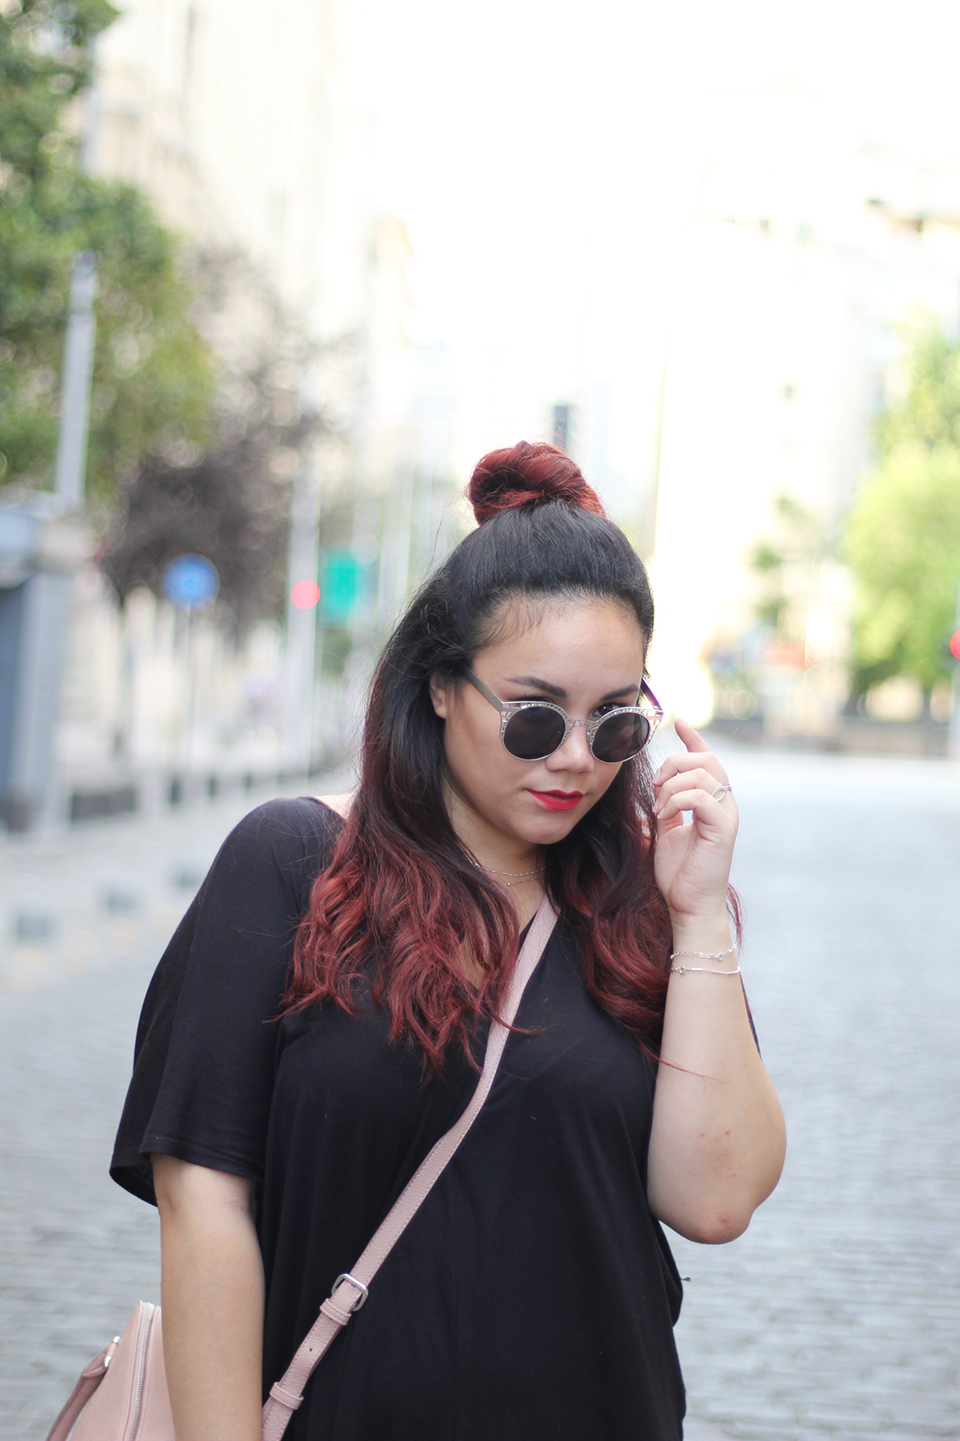 comfy-look-oversized-dress-dafiti-chile-forever-21-mexican-blogger-hm-half-bun-street-style-easy-going-outfif-quay-sunnies